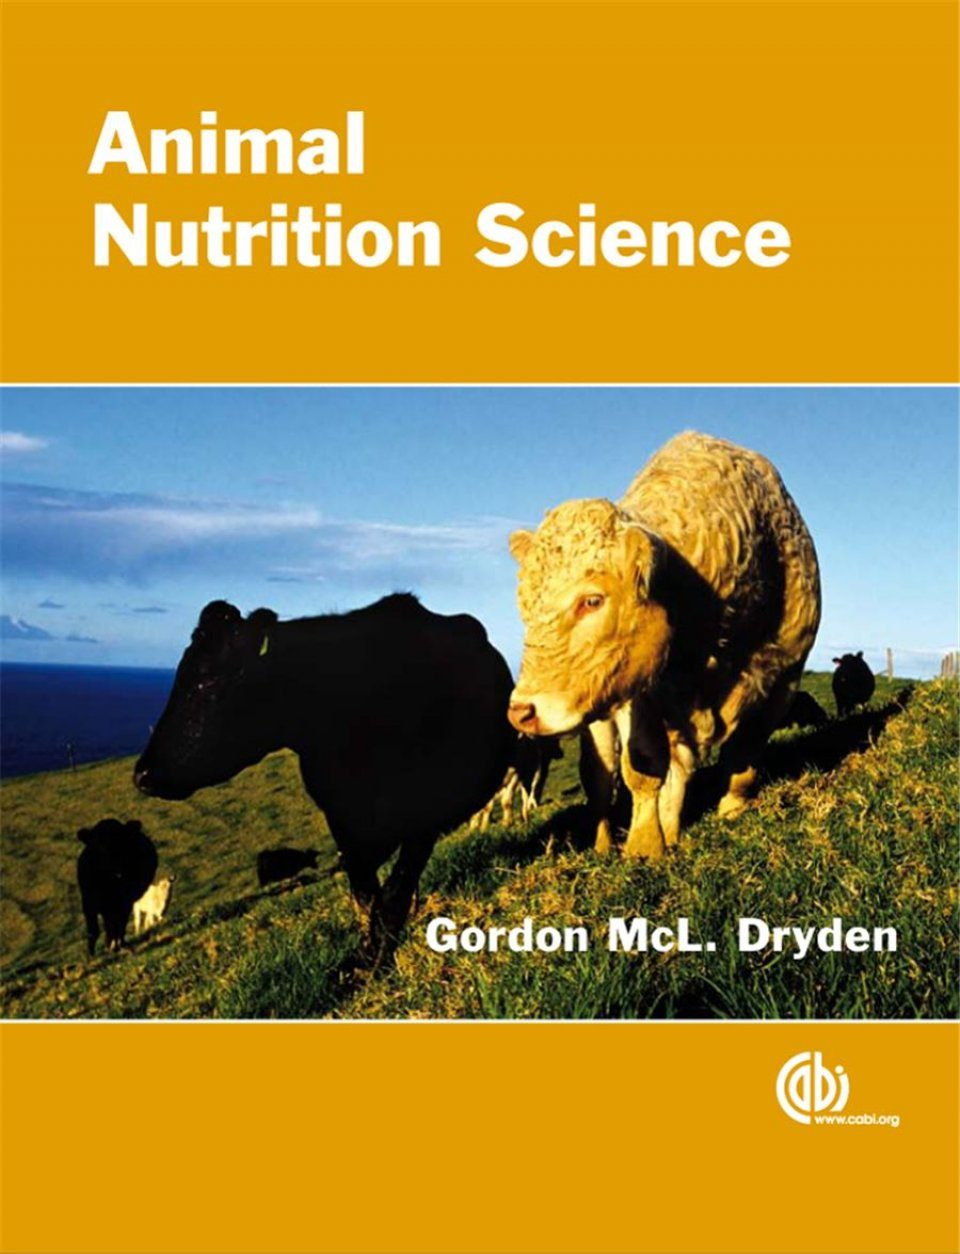 Animal Nutrition Science